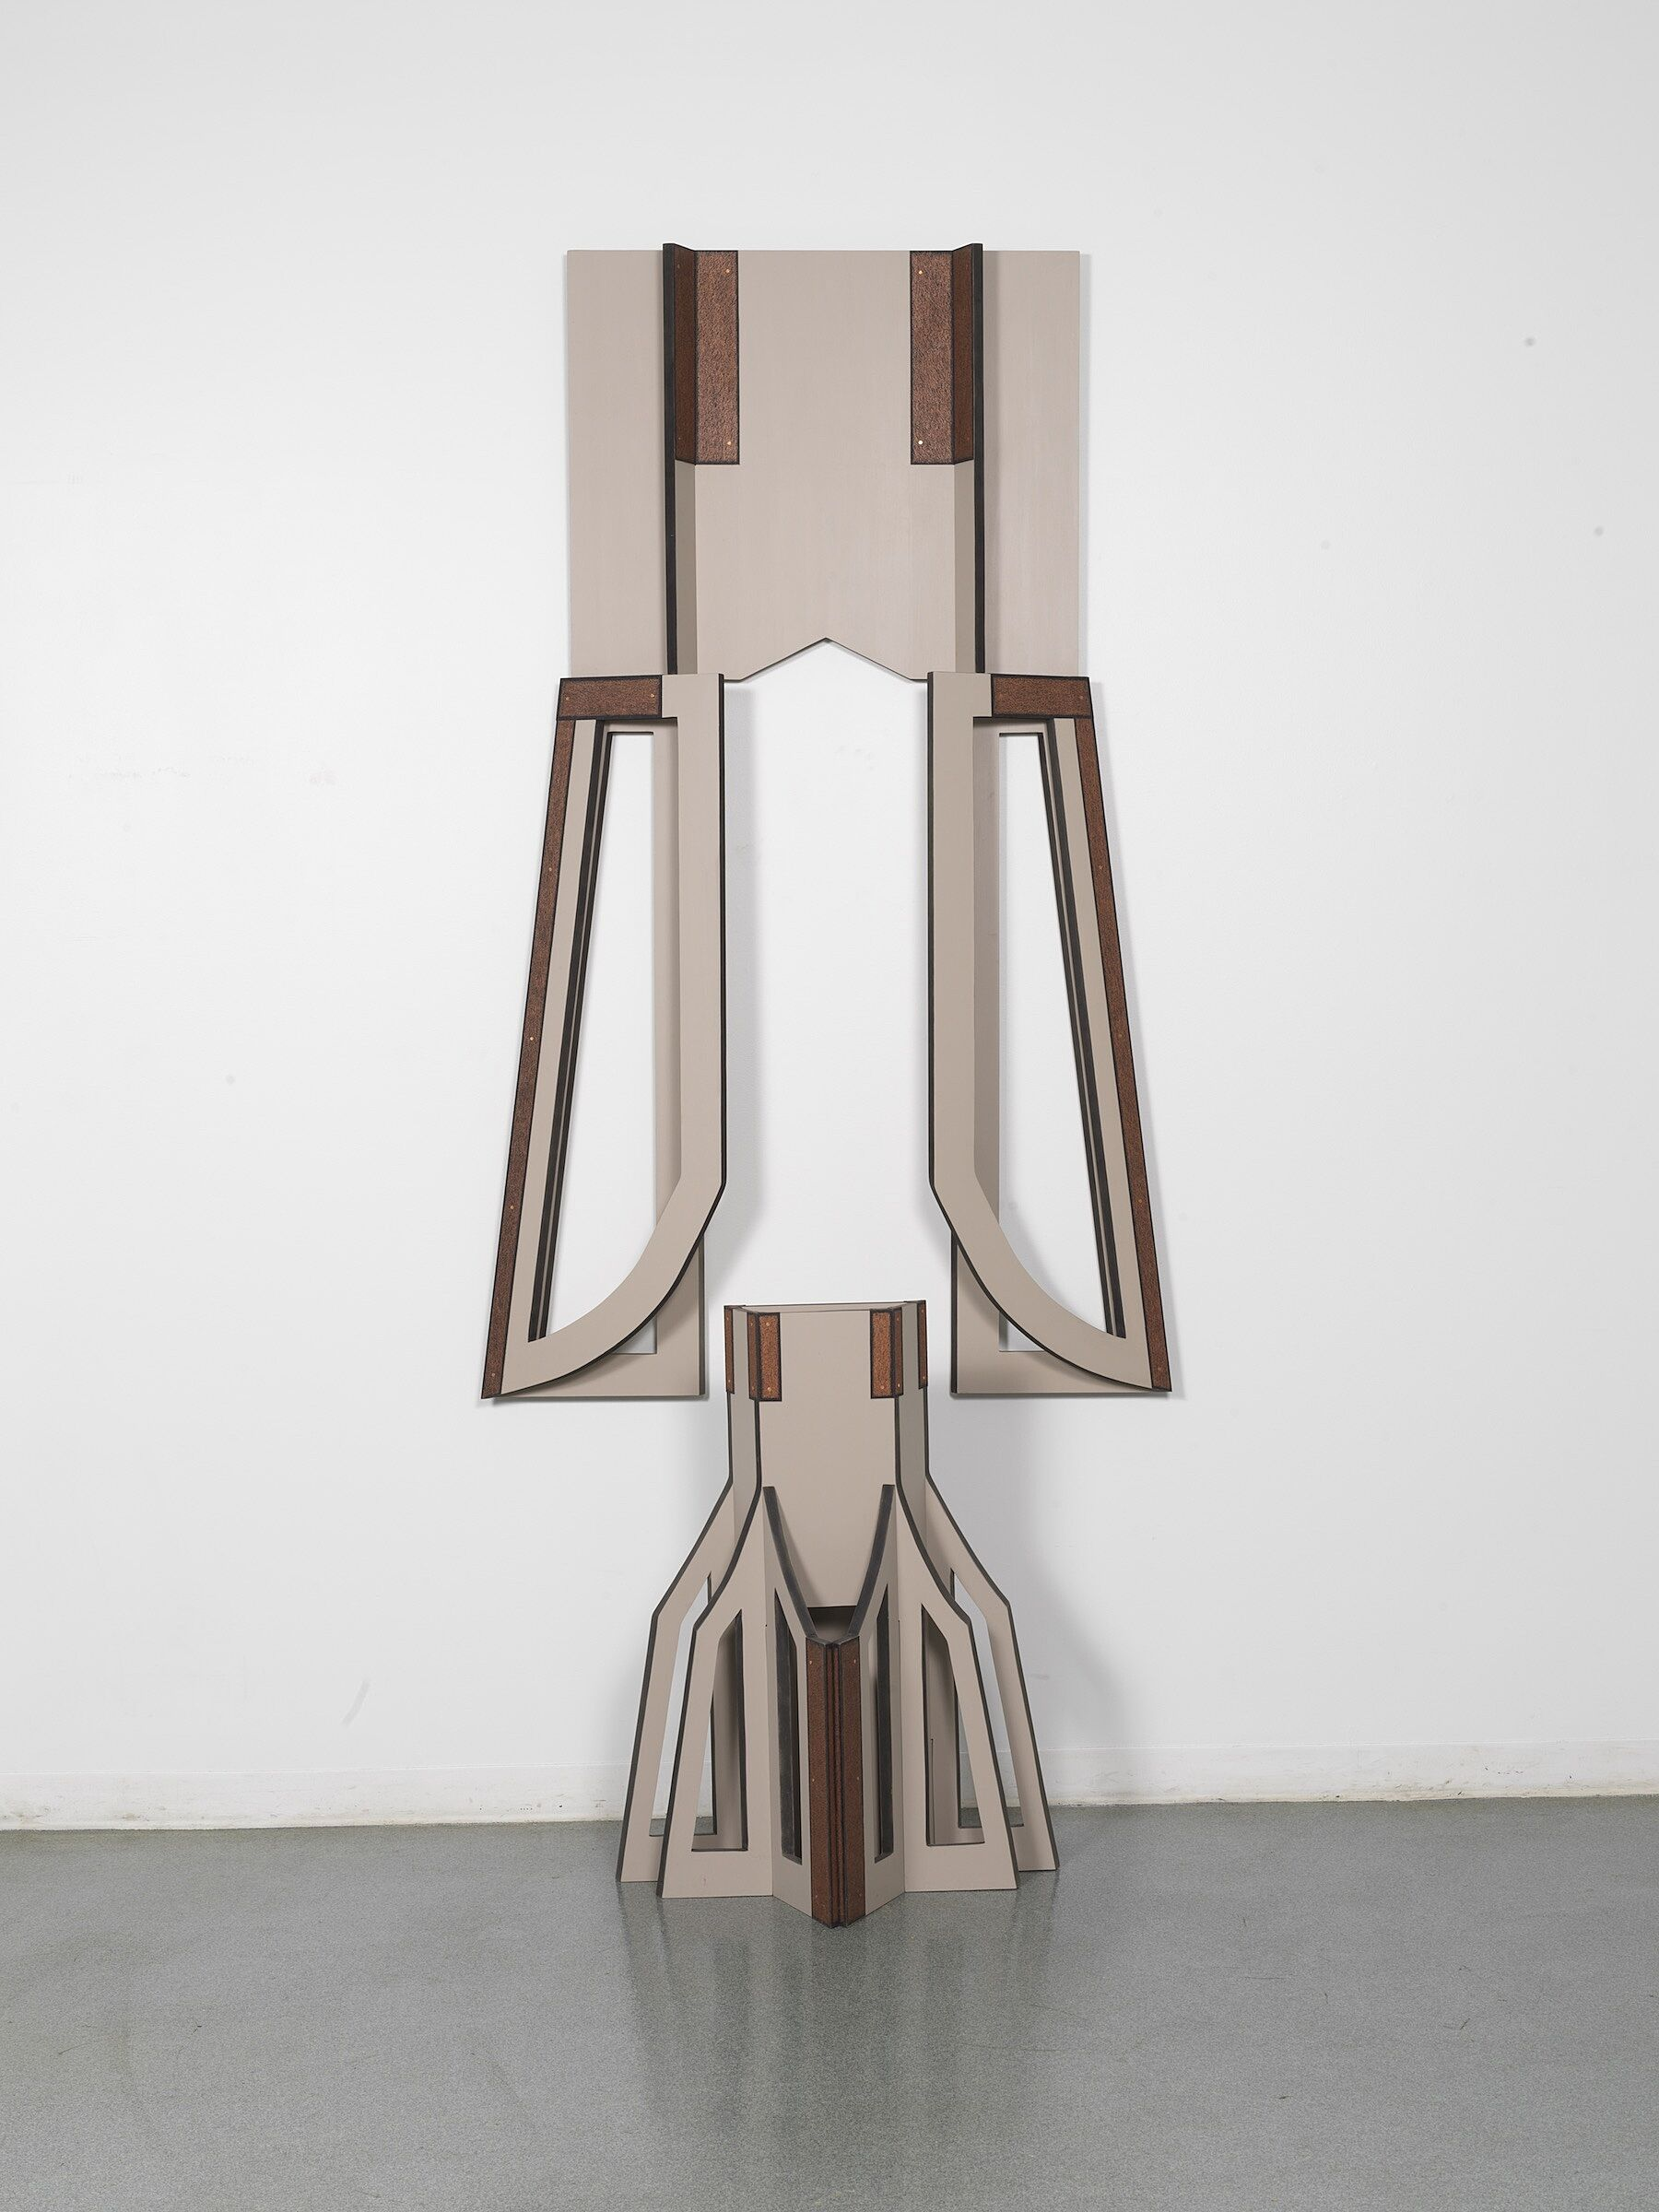 A beige, geometric sculpture with elements both hanging on the wall and on the floor.